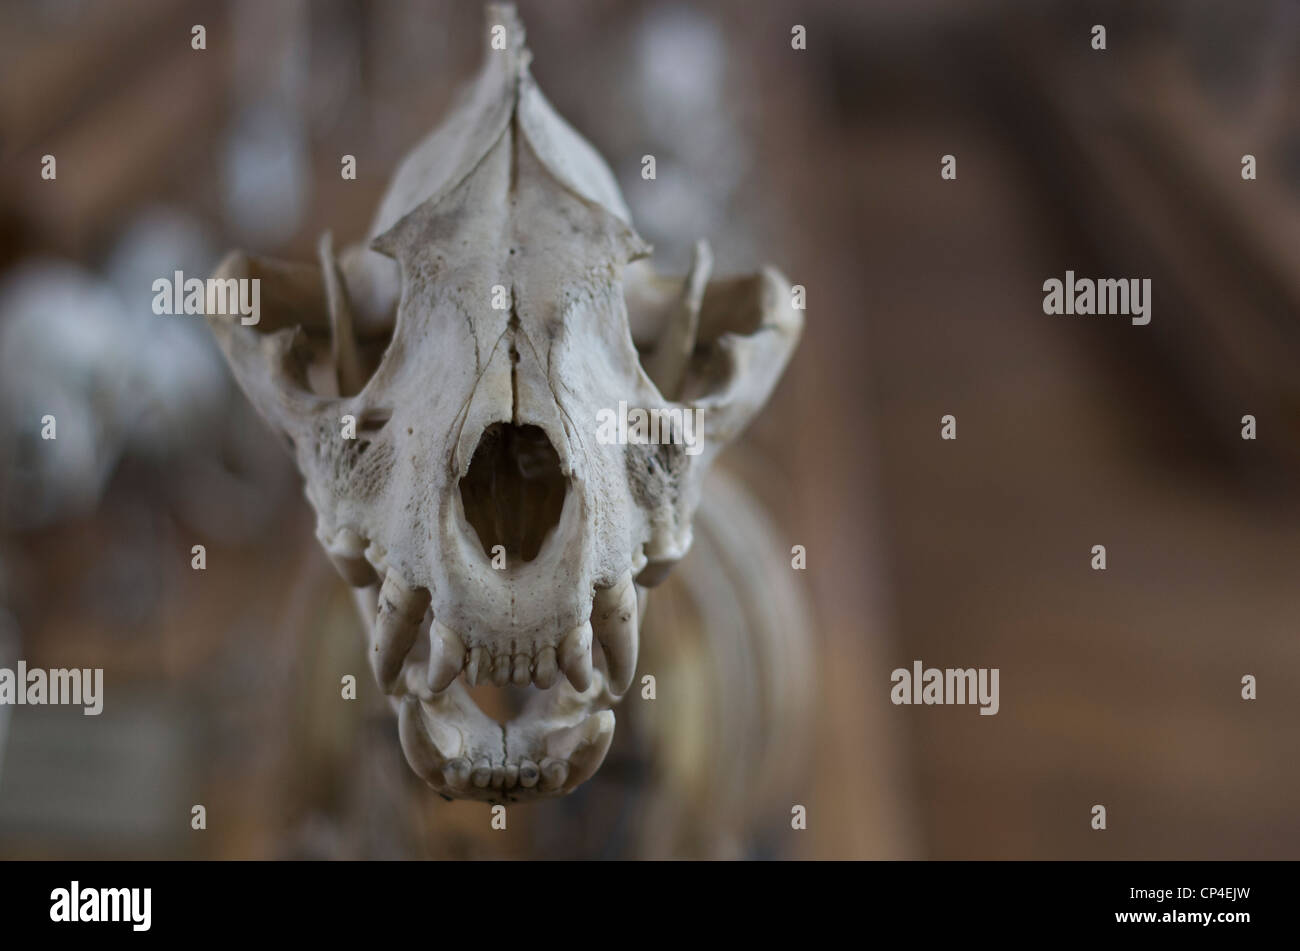 Museum of natural history of Paris. - Stock Image